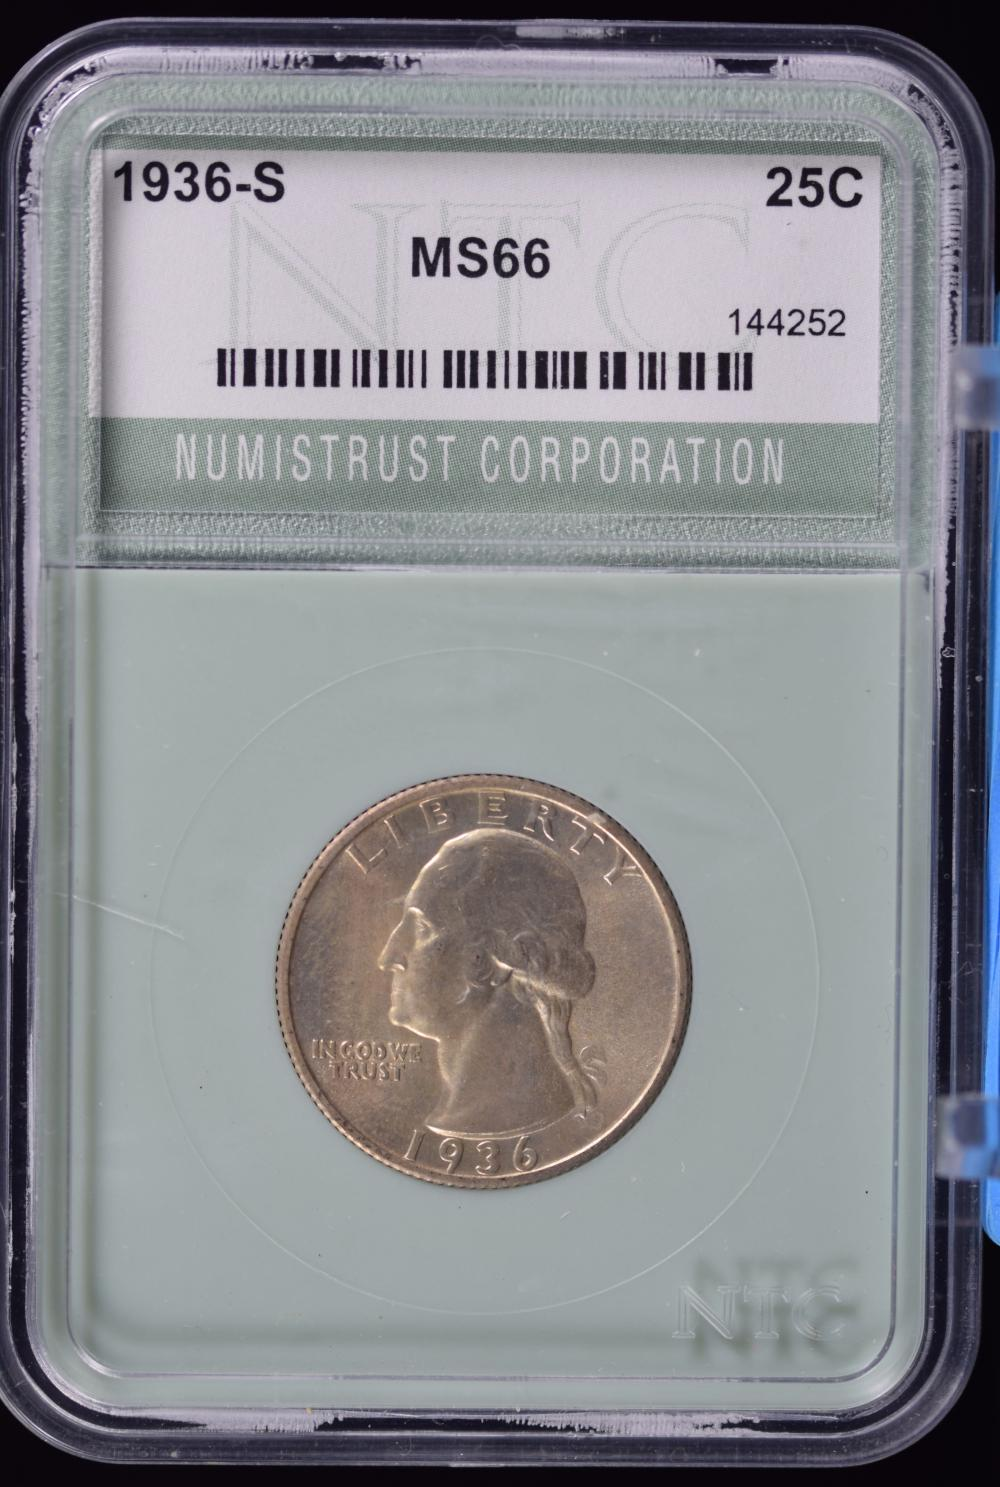 1936-S Washington Quarter NTC MS66 Scarce This NICE